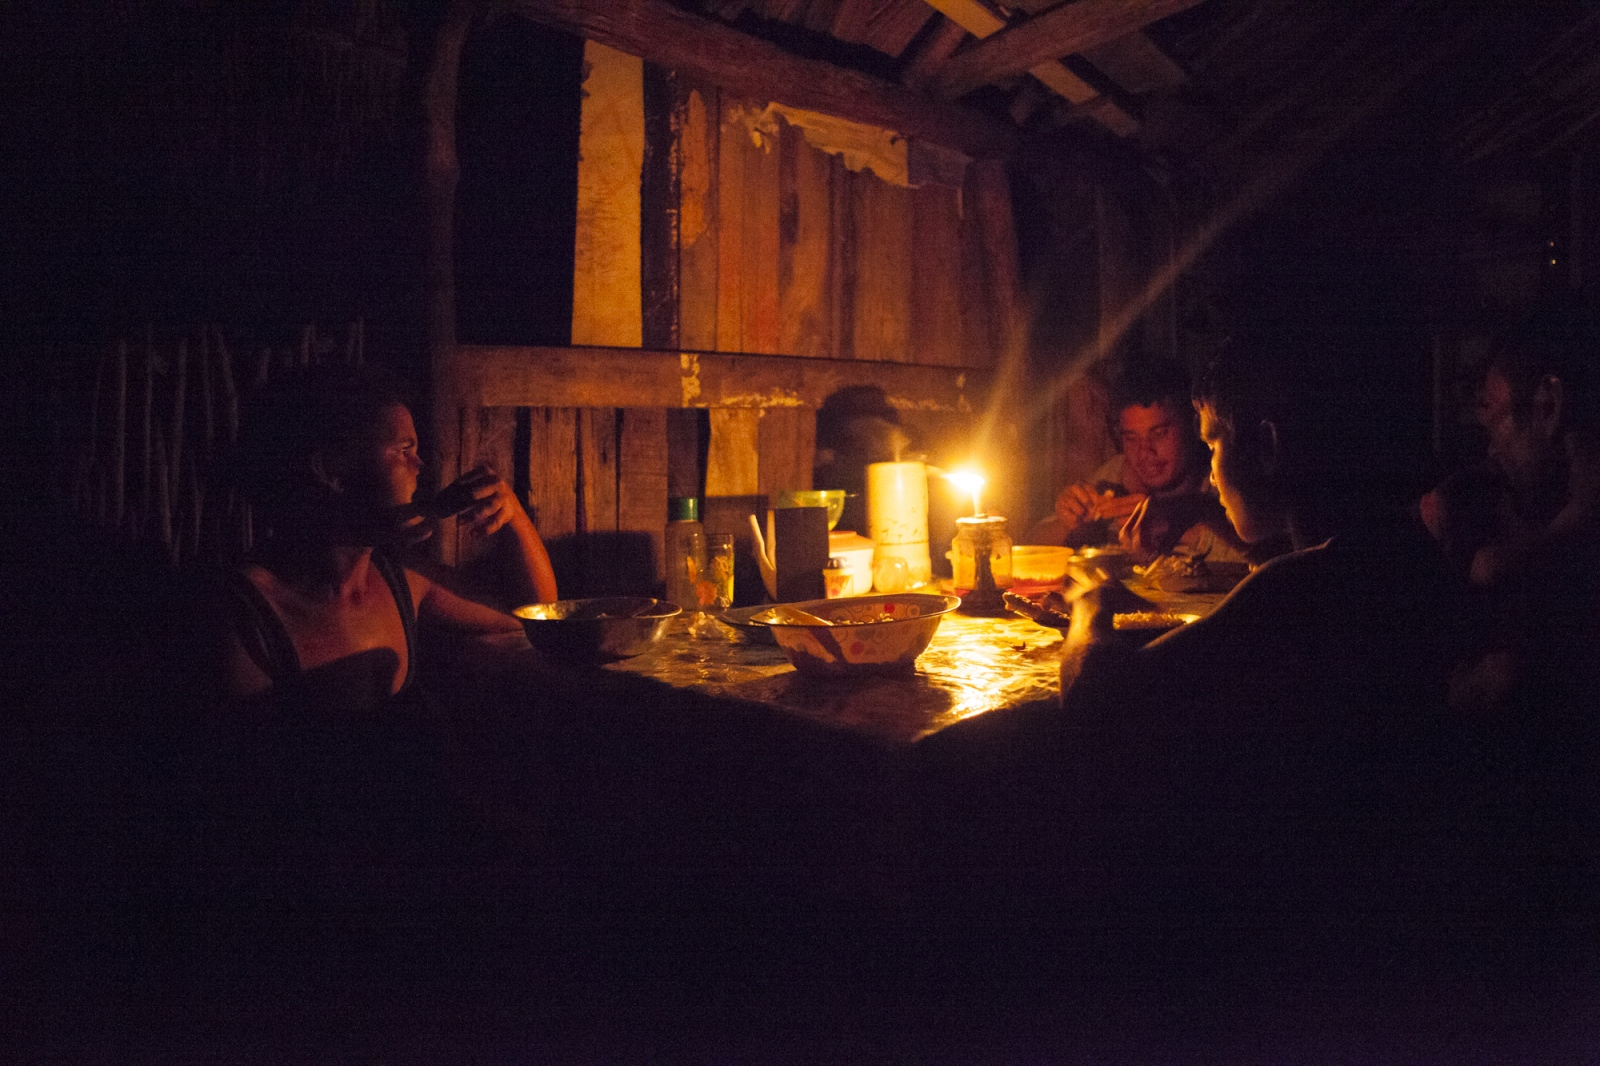 Auriela Brito has dinner with her sons, Tico and Adriel Brito. Electricity doesn't reach the Queimada dos Britos, so during the evening people relax and eat around kerosene lamps.